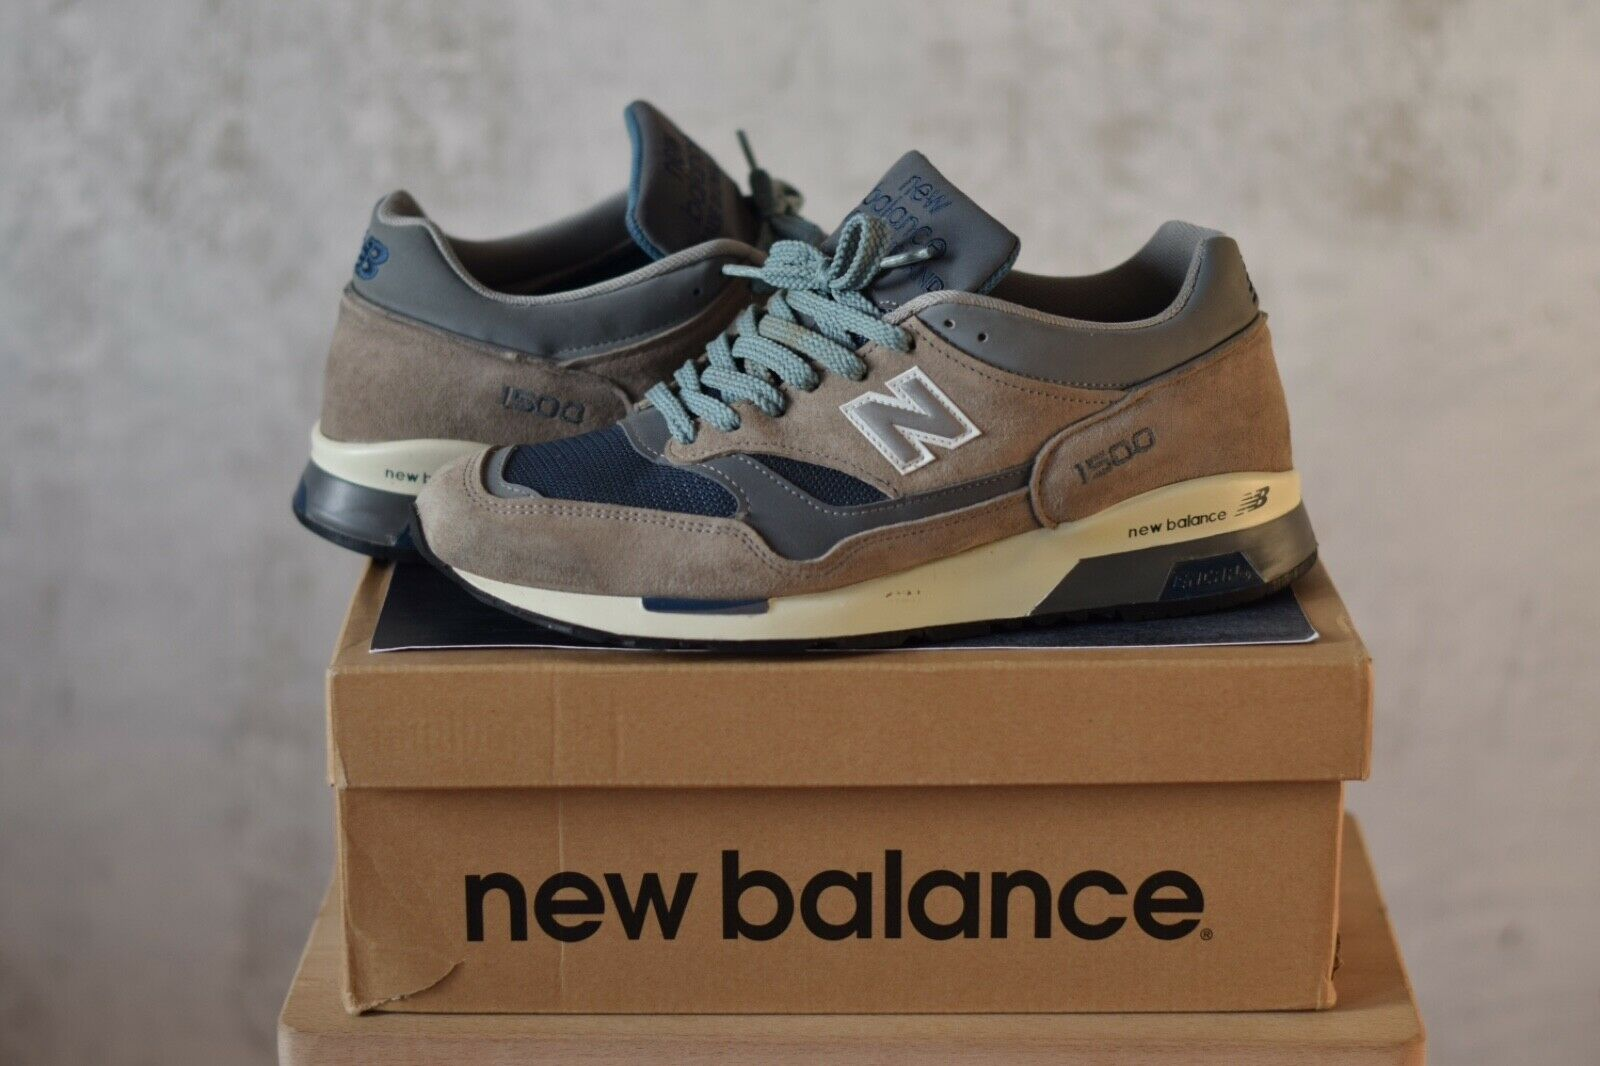 New Balance 1500 NO1 Norse Projects mens shoes sneakers trainers US 9 UK 8,5 42